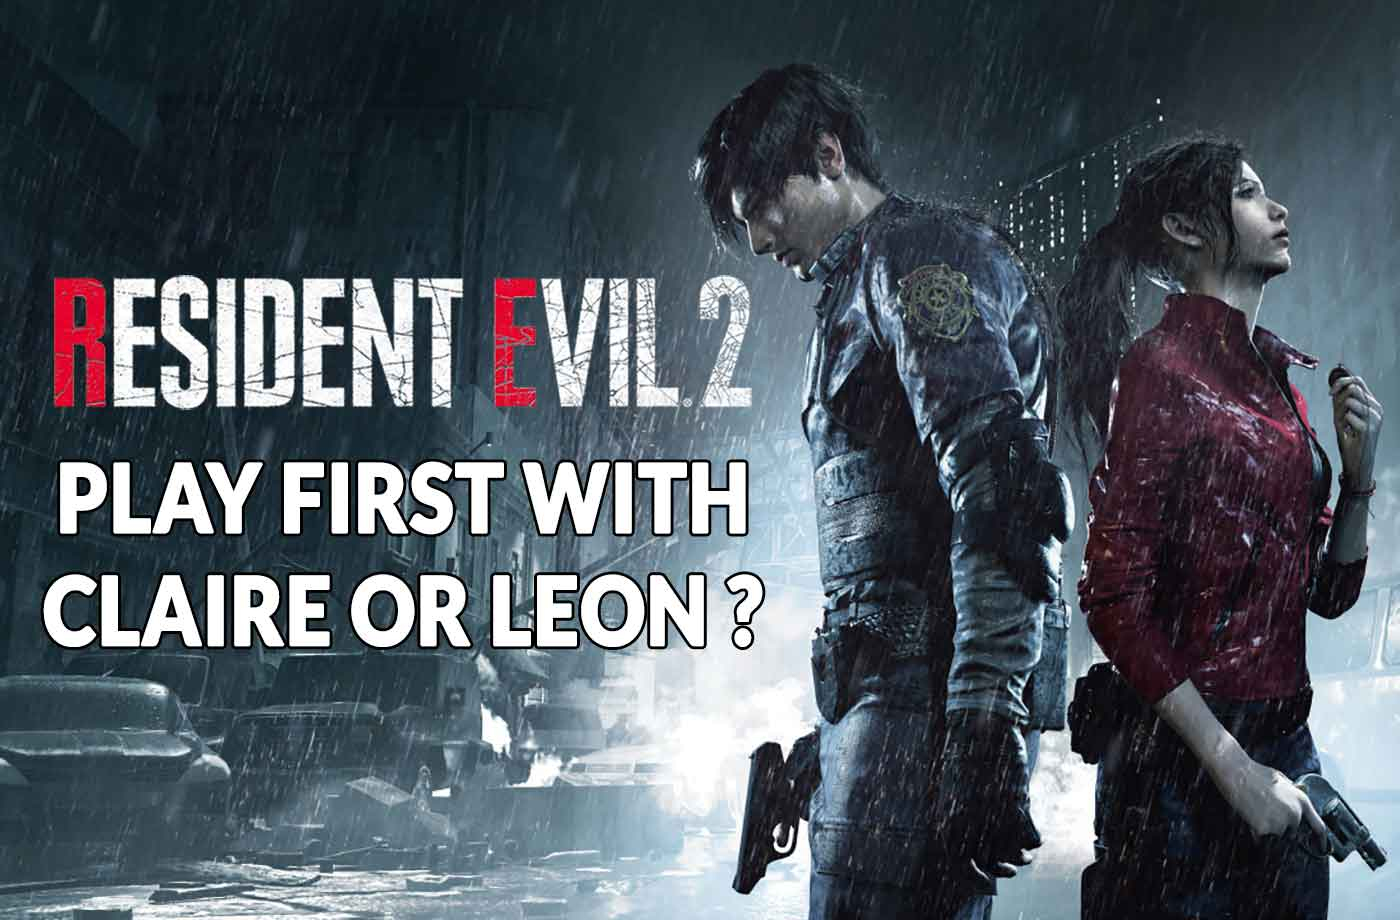 Resident Evil 2 Remake Which Character To Choose First, Leon avec Jeux Des Differences Gratuit